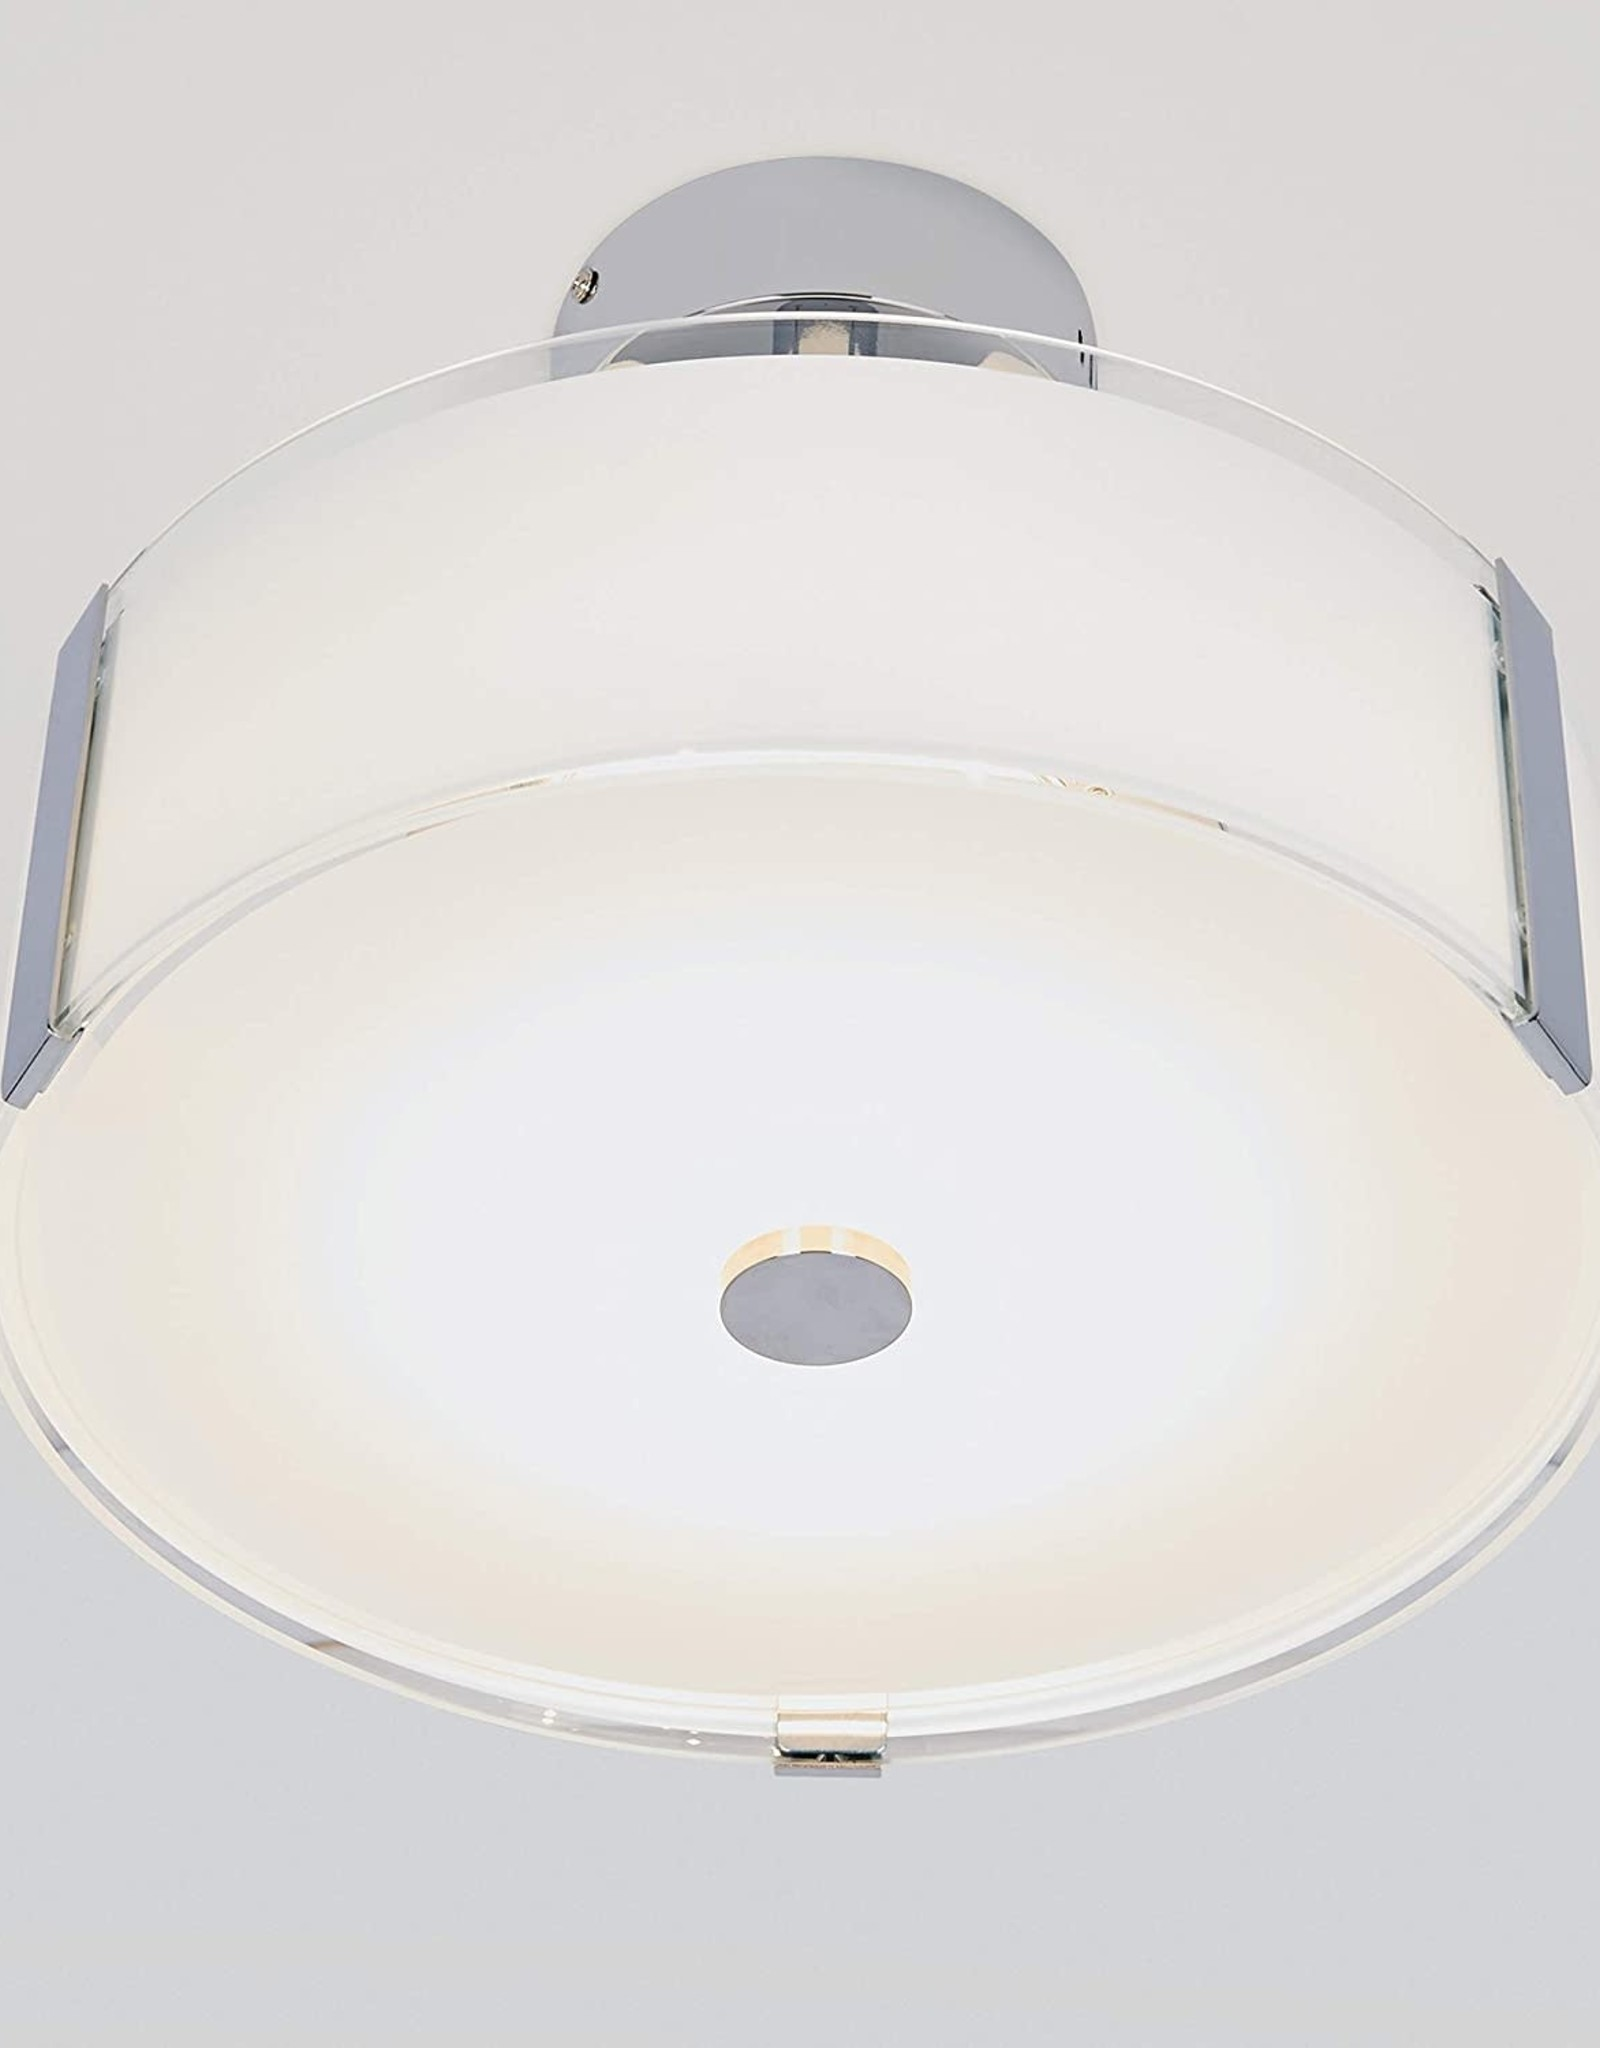 ARTIKA FOR LIVING INC Artika Subway Ceiling Light